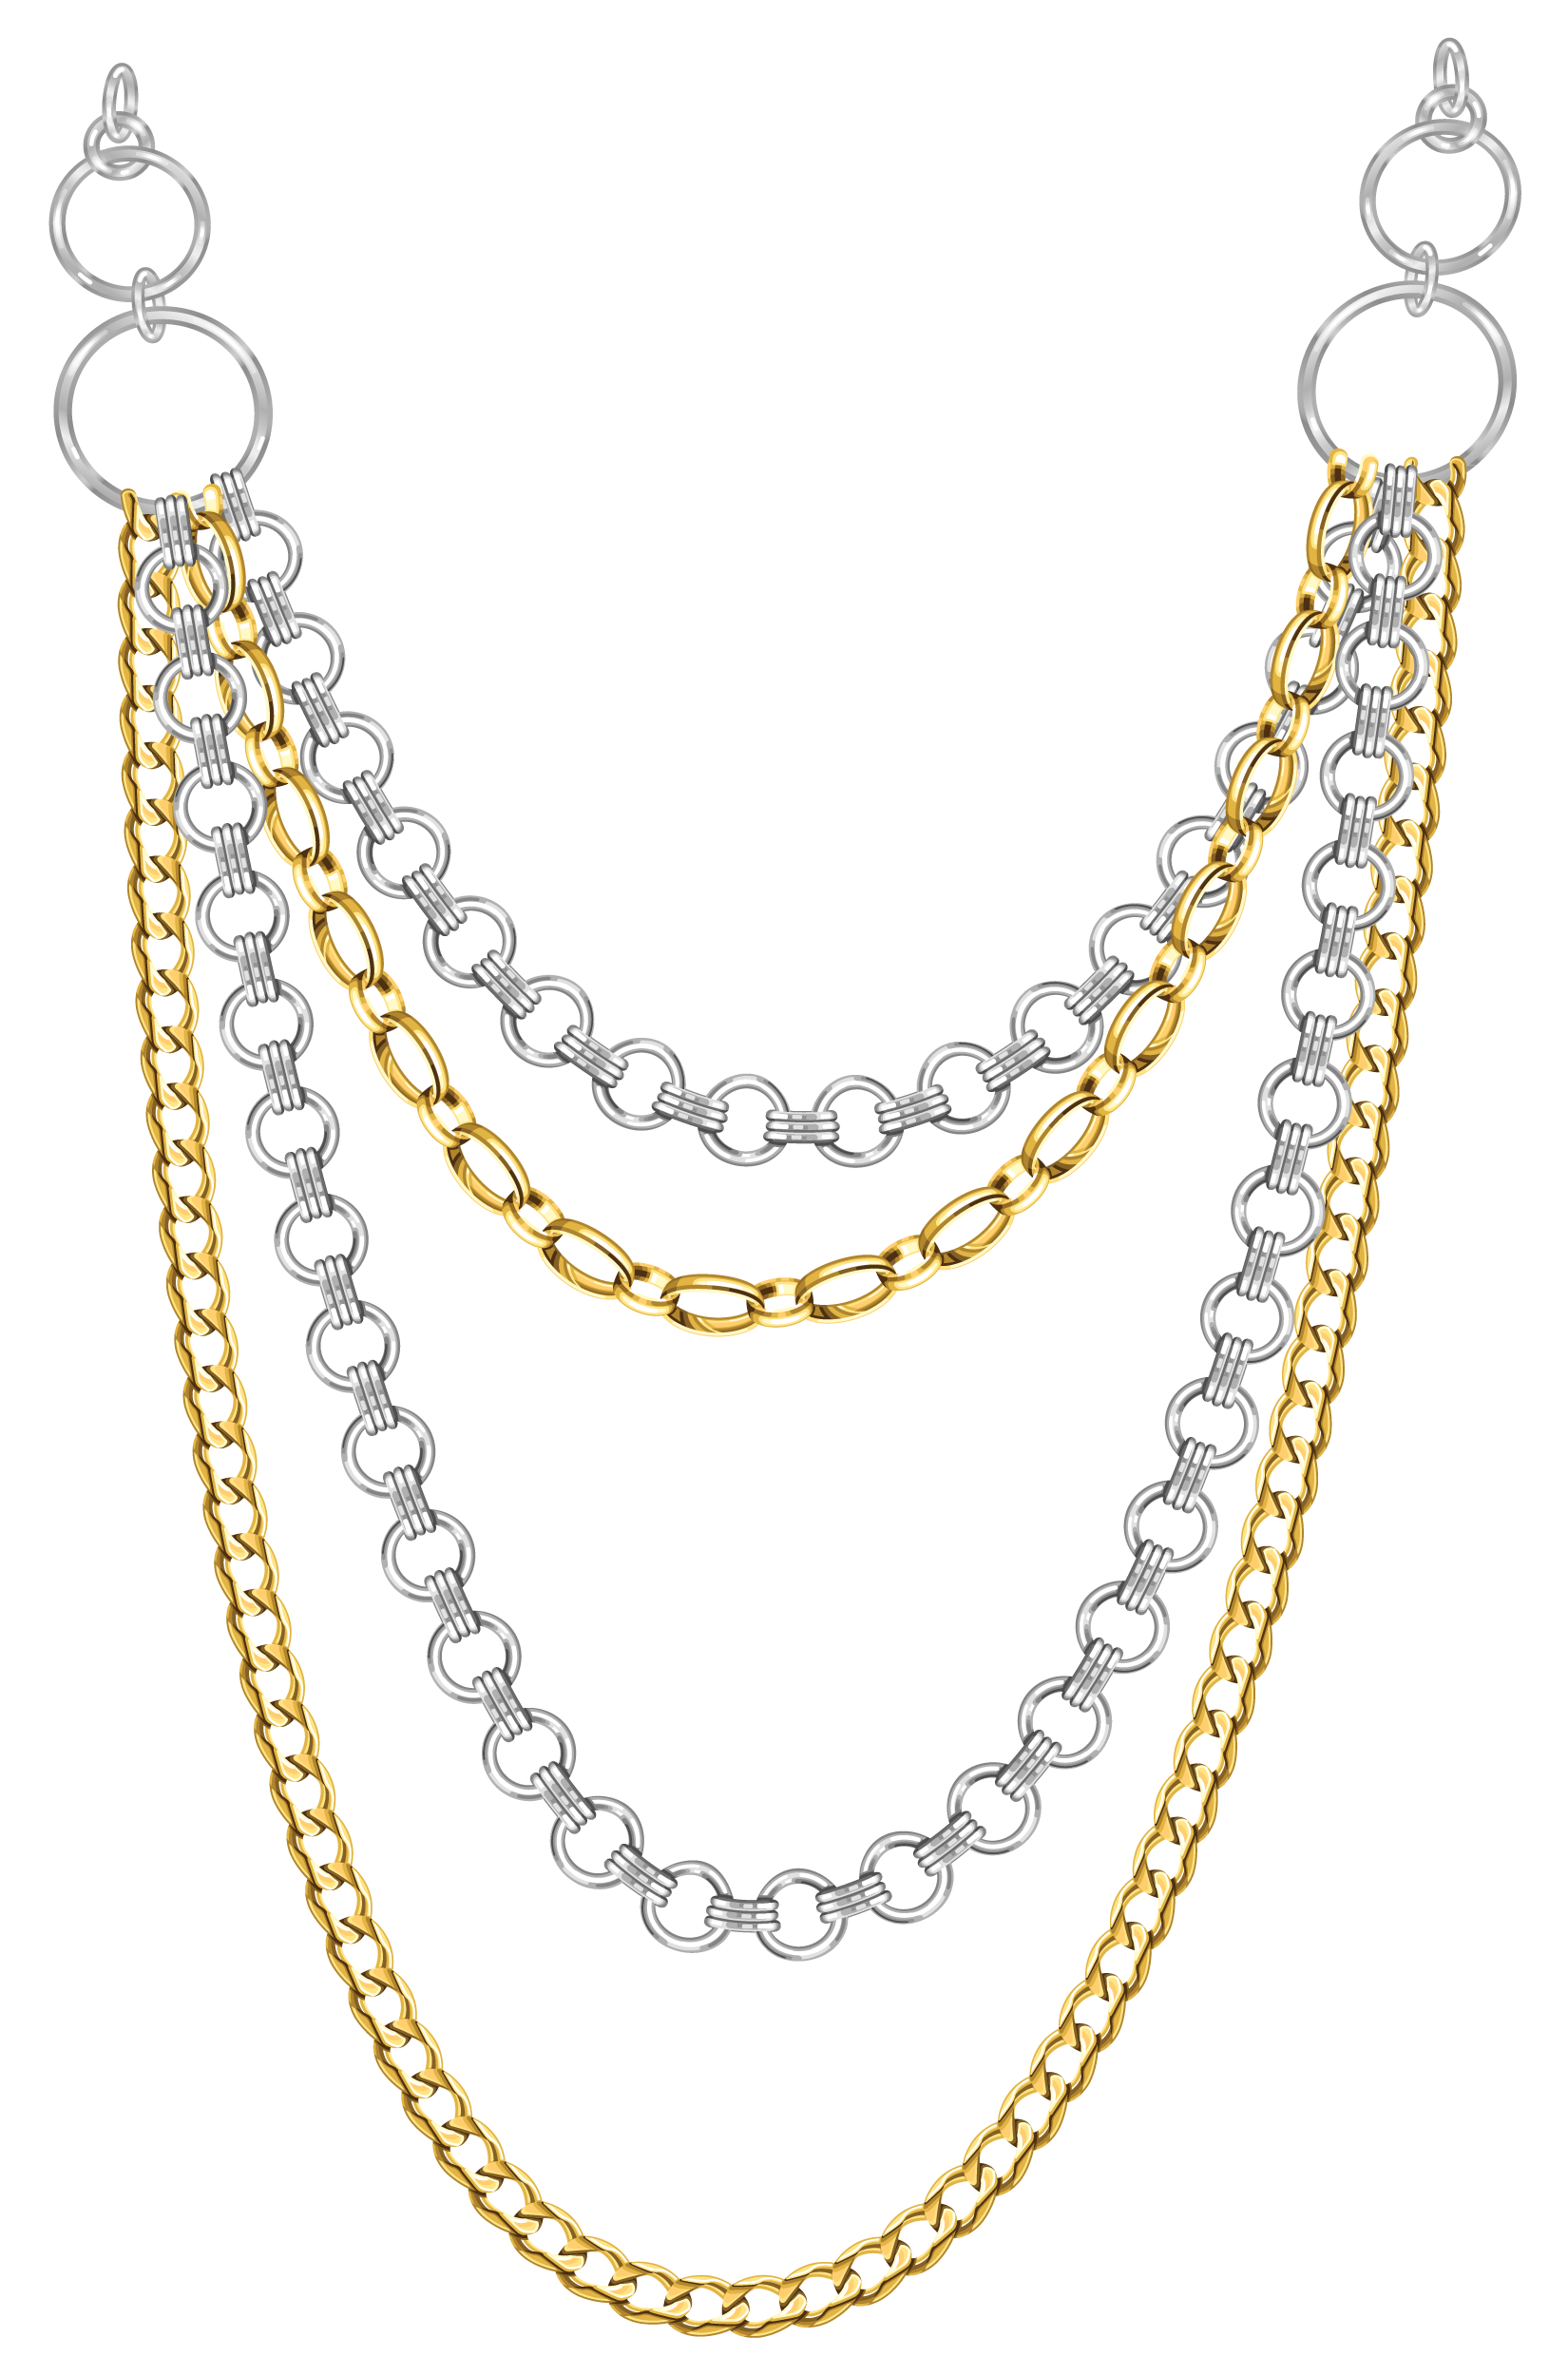 Chain Vector Free